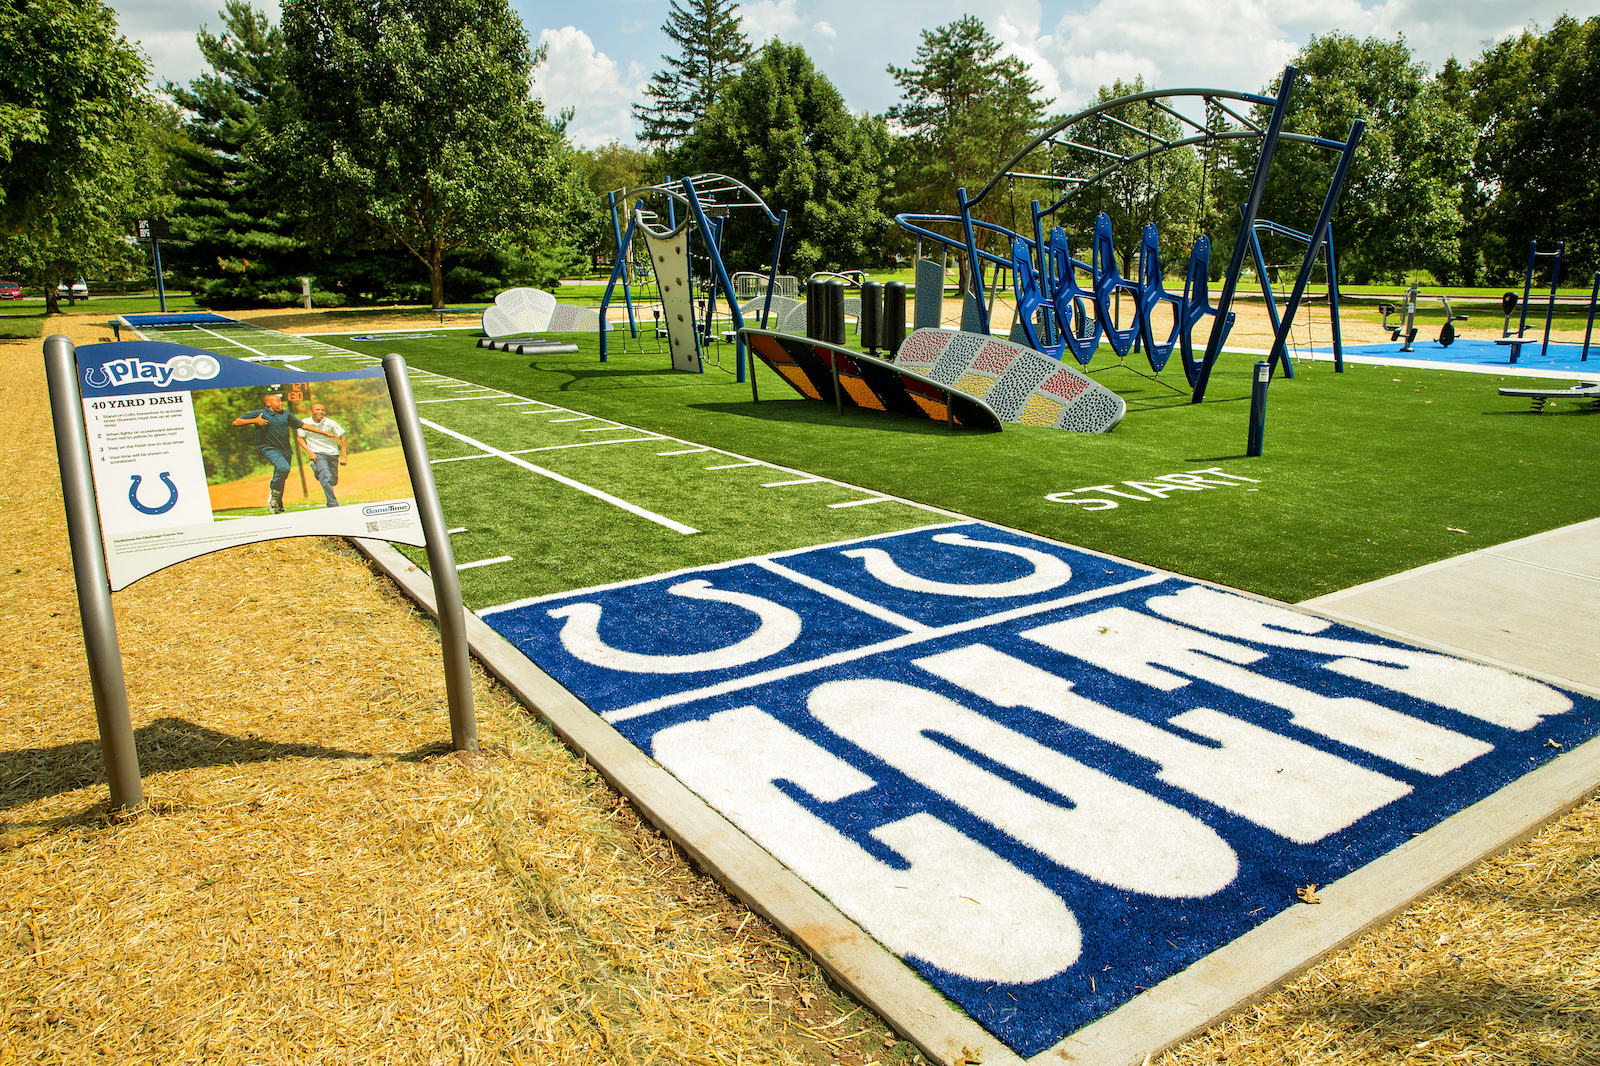 Outdoor Play Indianapolis  INDIANAPOLIS, IN (September 21, 2016)  GameTime, a leading manufacturer of commercial playground equipment, custom play spaces and outdoor fitness products ...